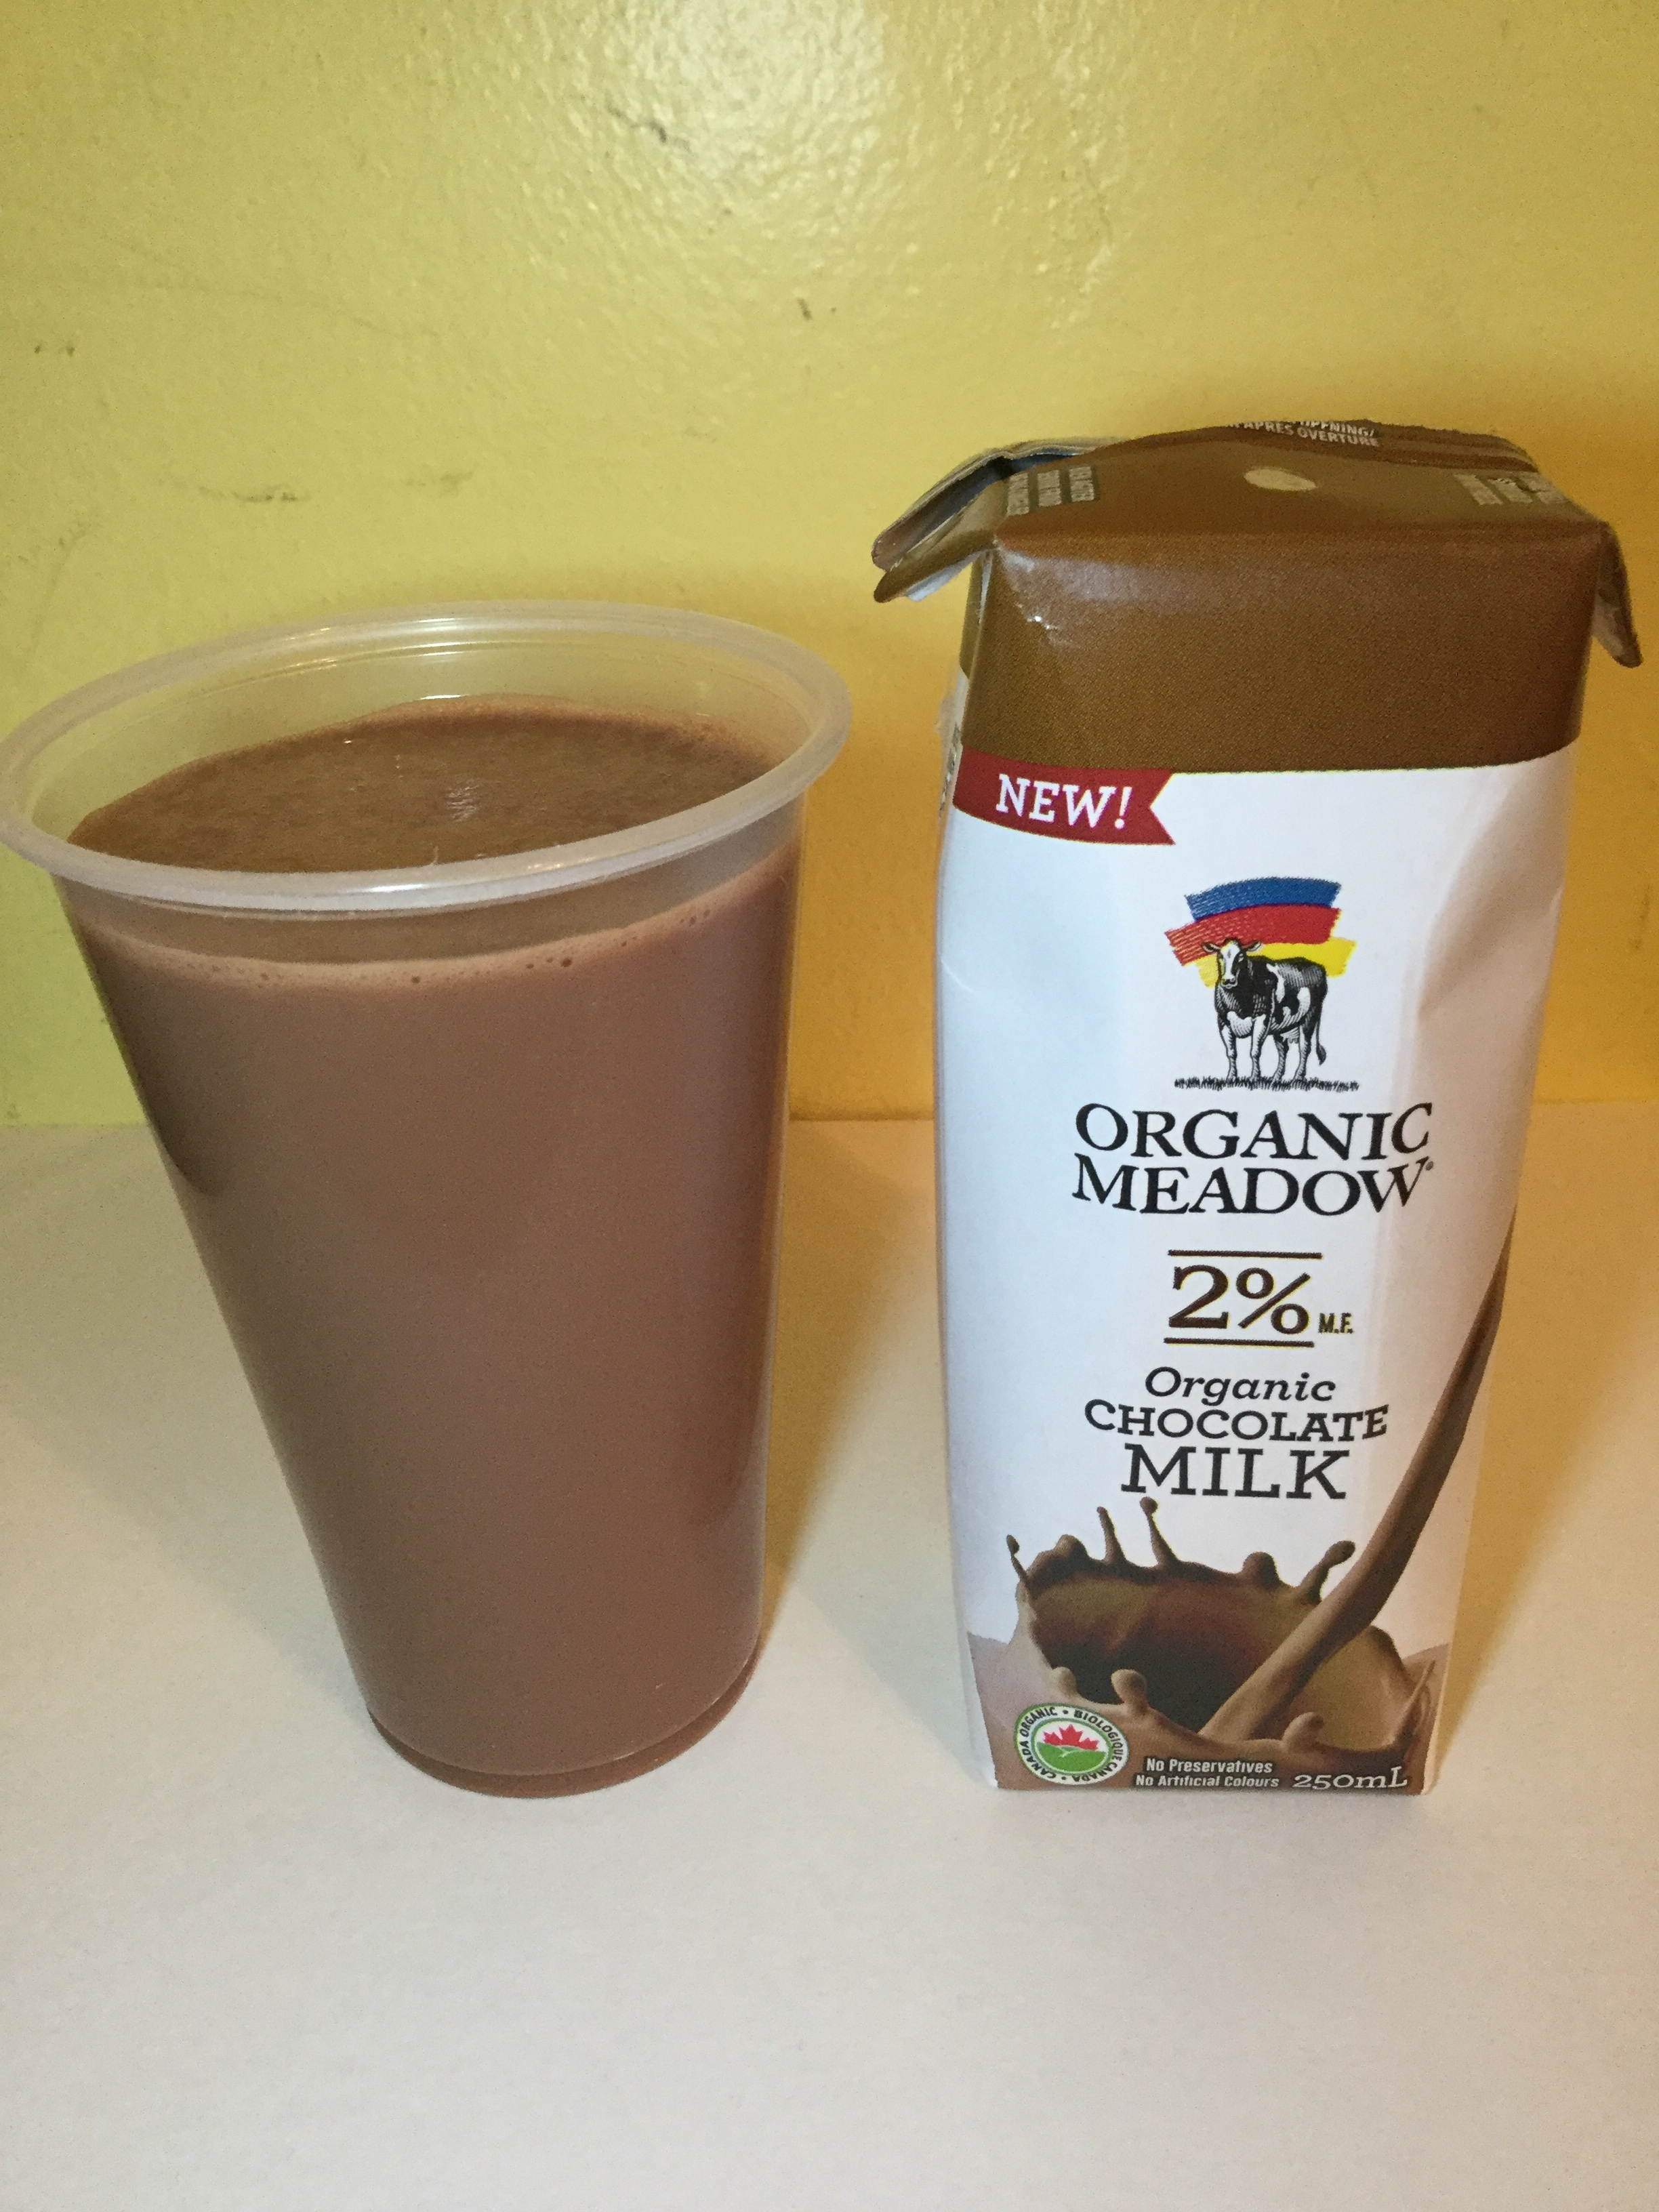 Organic Meadow Chocolate Milk (UHT) Cup